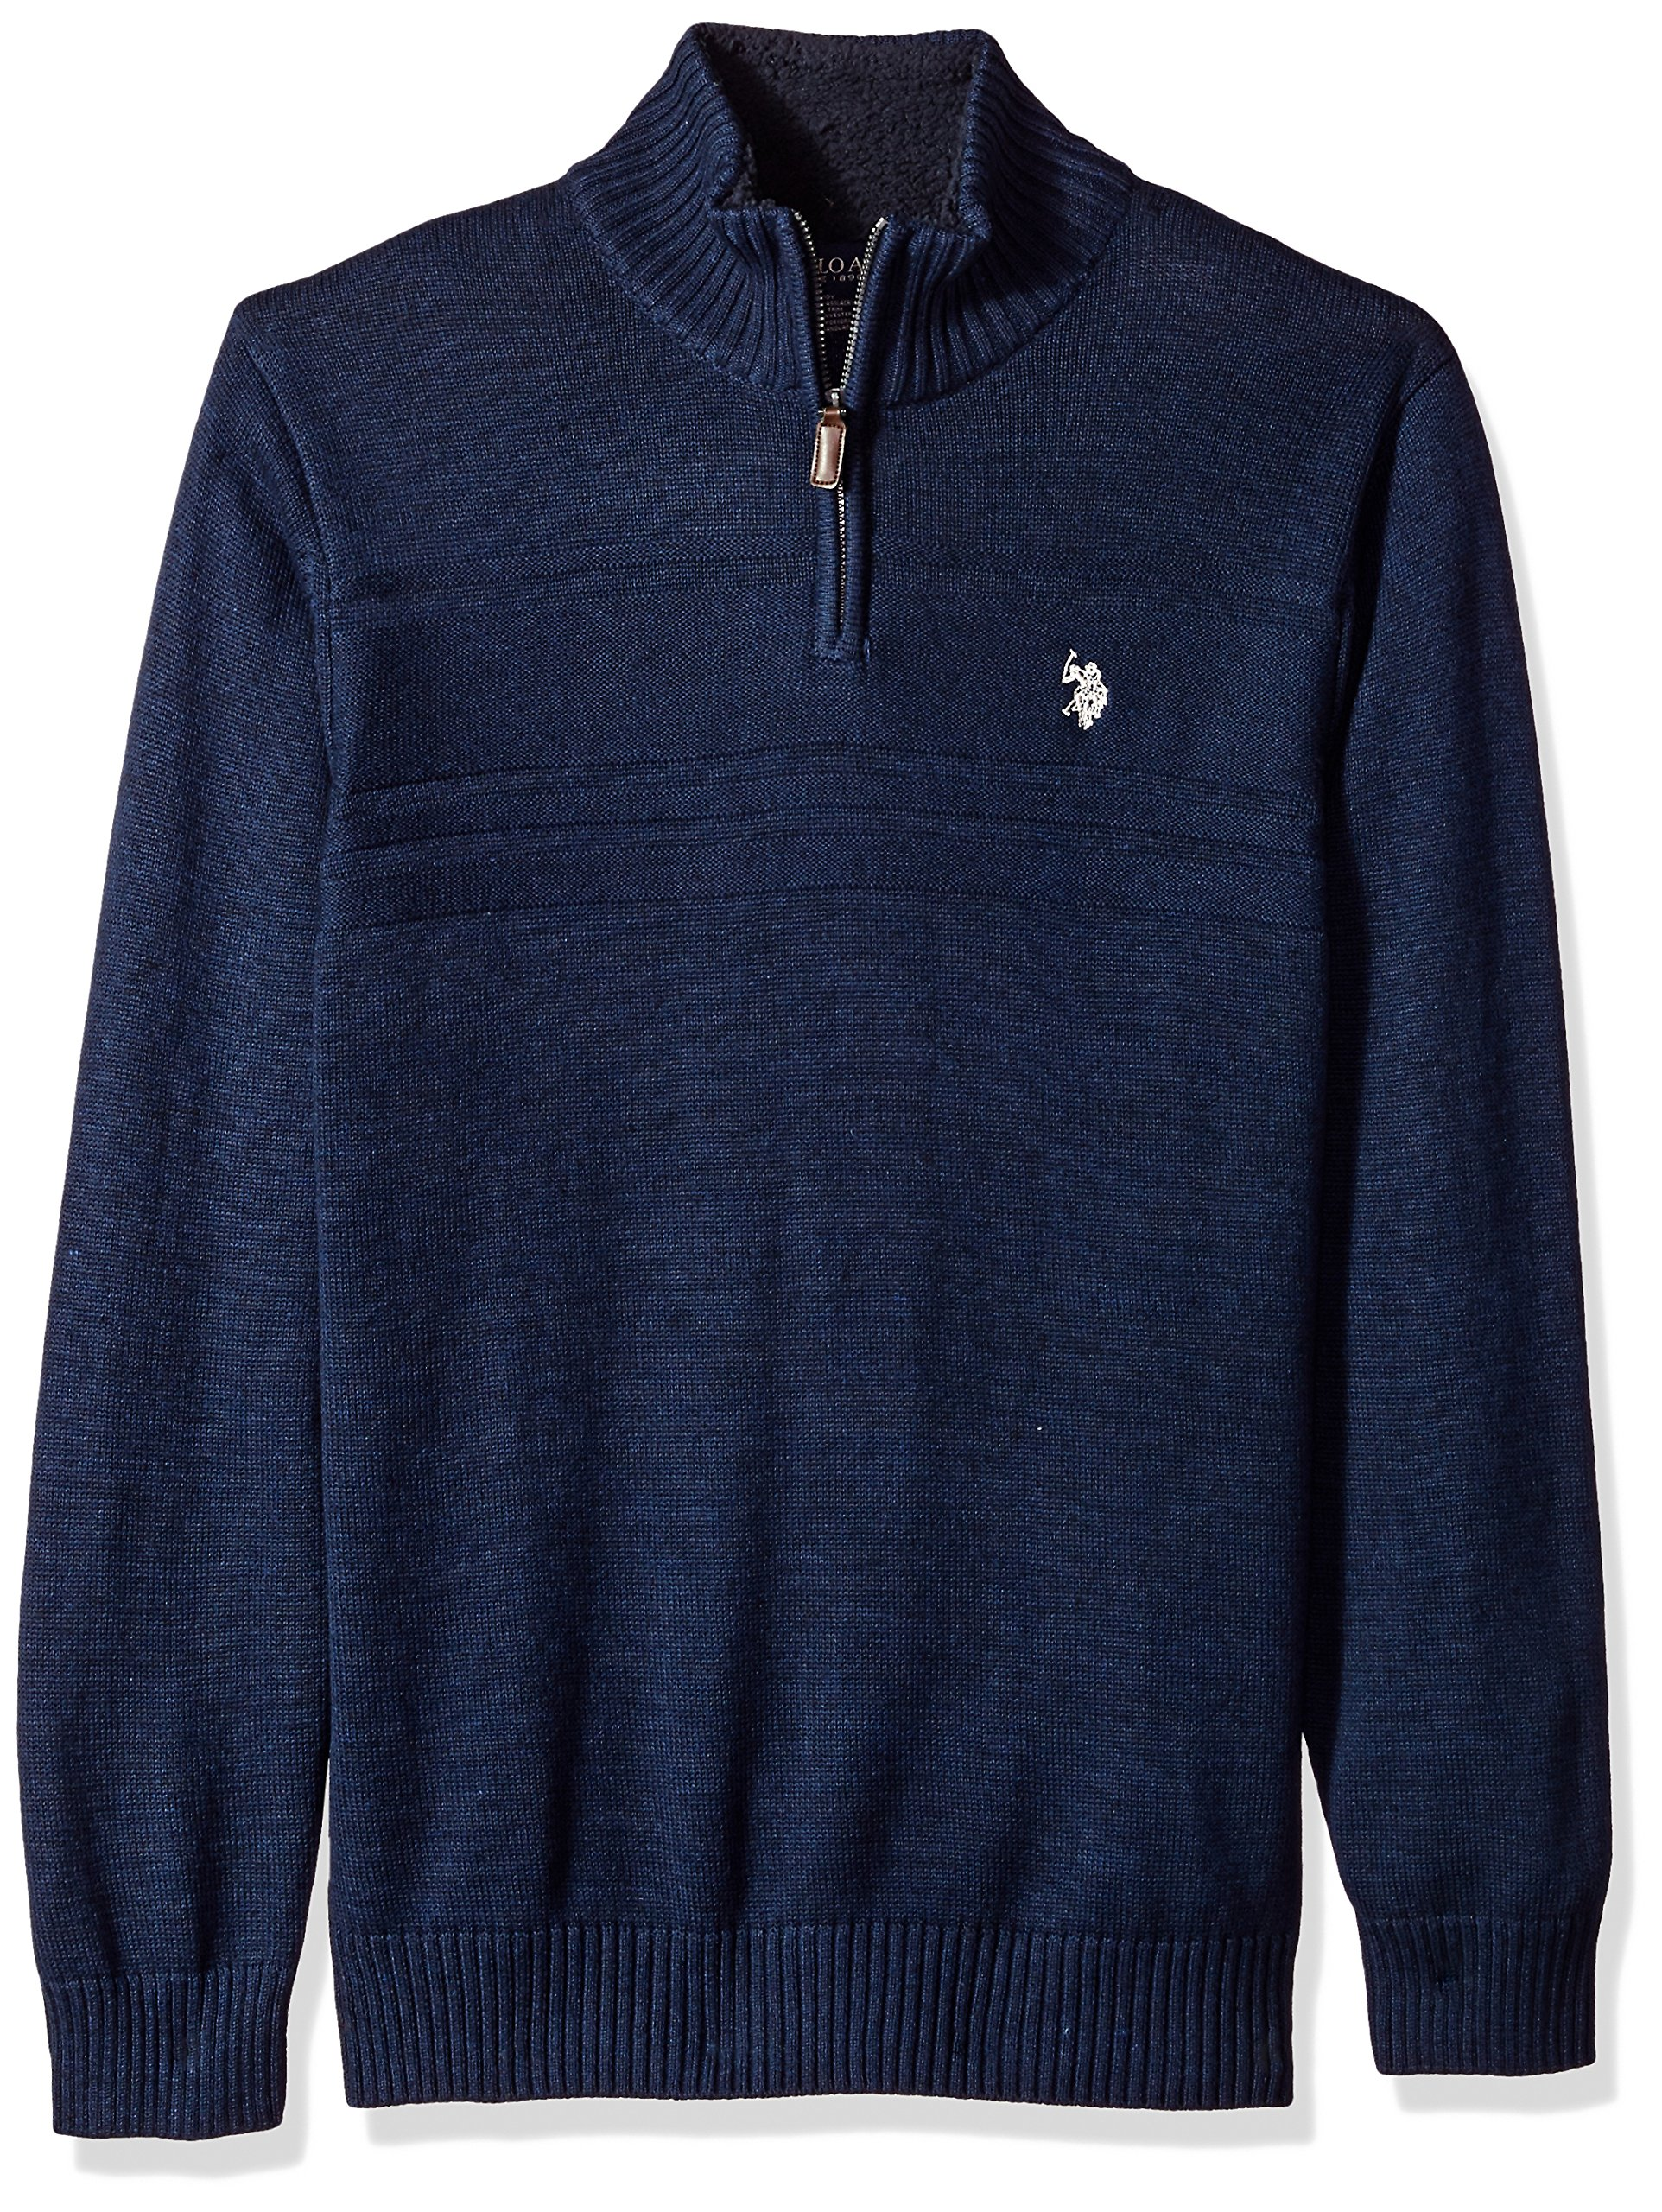 U.S. Polo Assn. Men's Solid Texture Chest Stripe 1/4 Sweater, Midnight Heather, Large by U.S. Polo Assn.